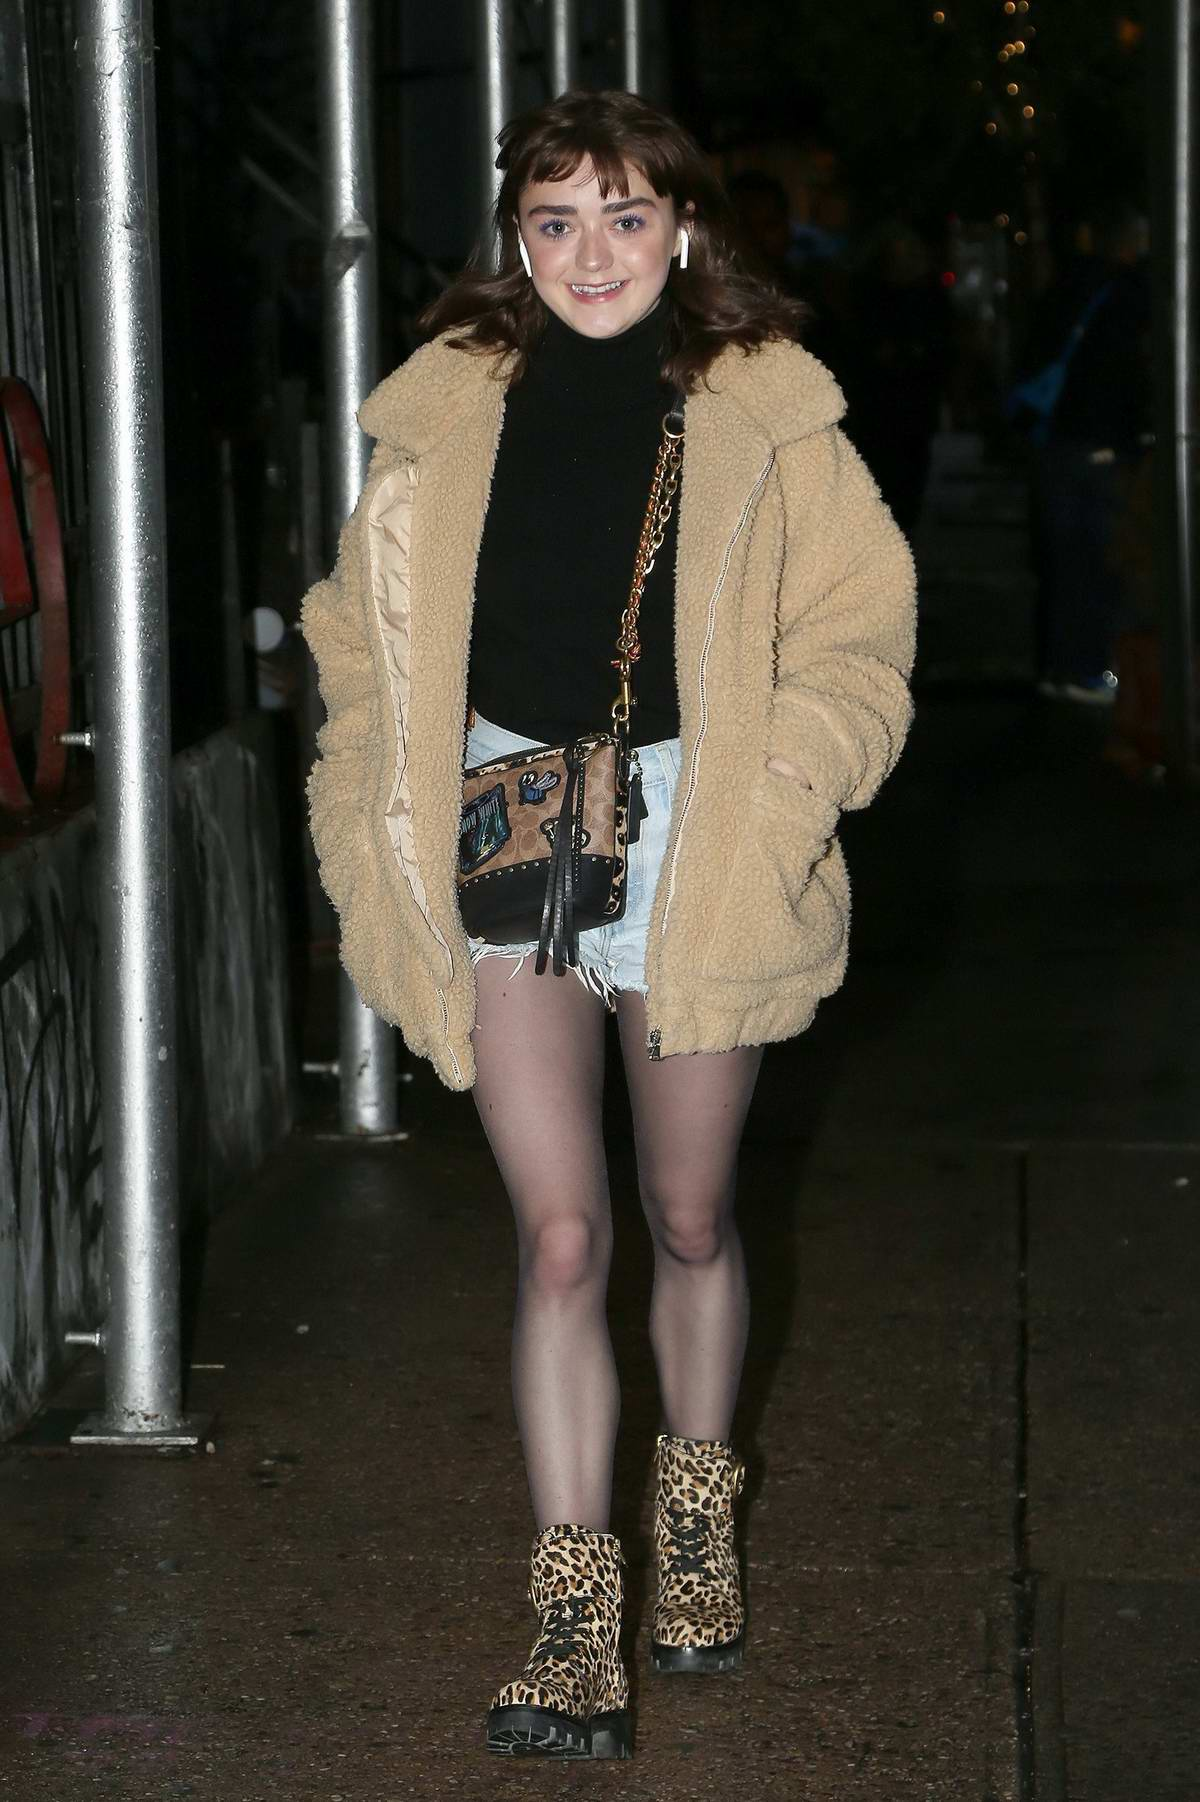 Maisie Williams is all smiles as she steps out in beige sherpa jacket and denim shorts with leopard print boots in New York City